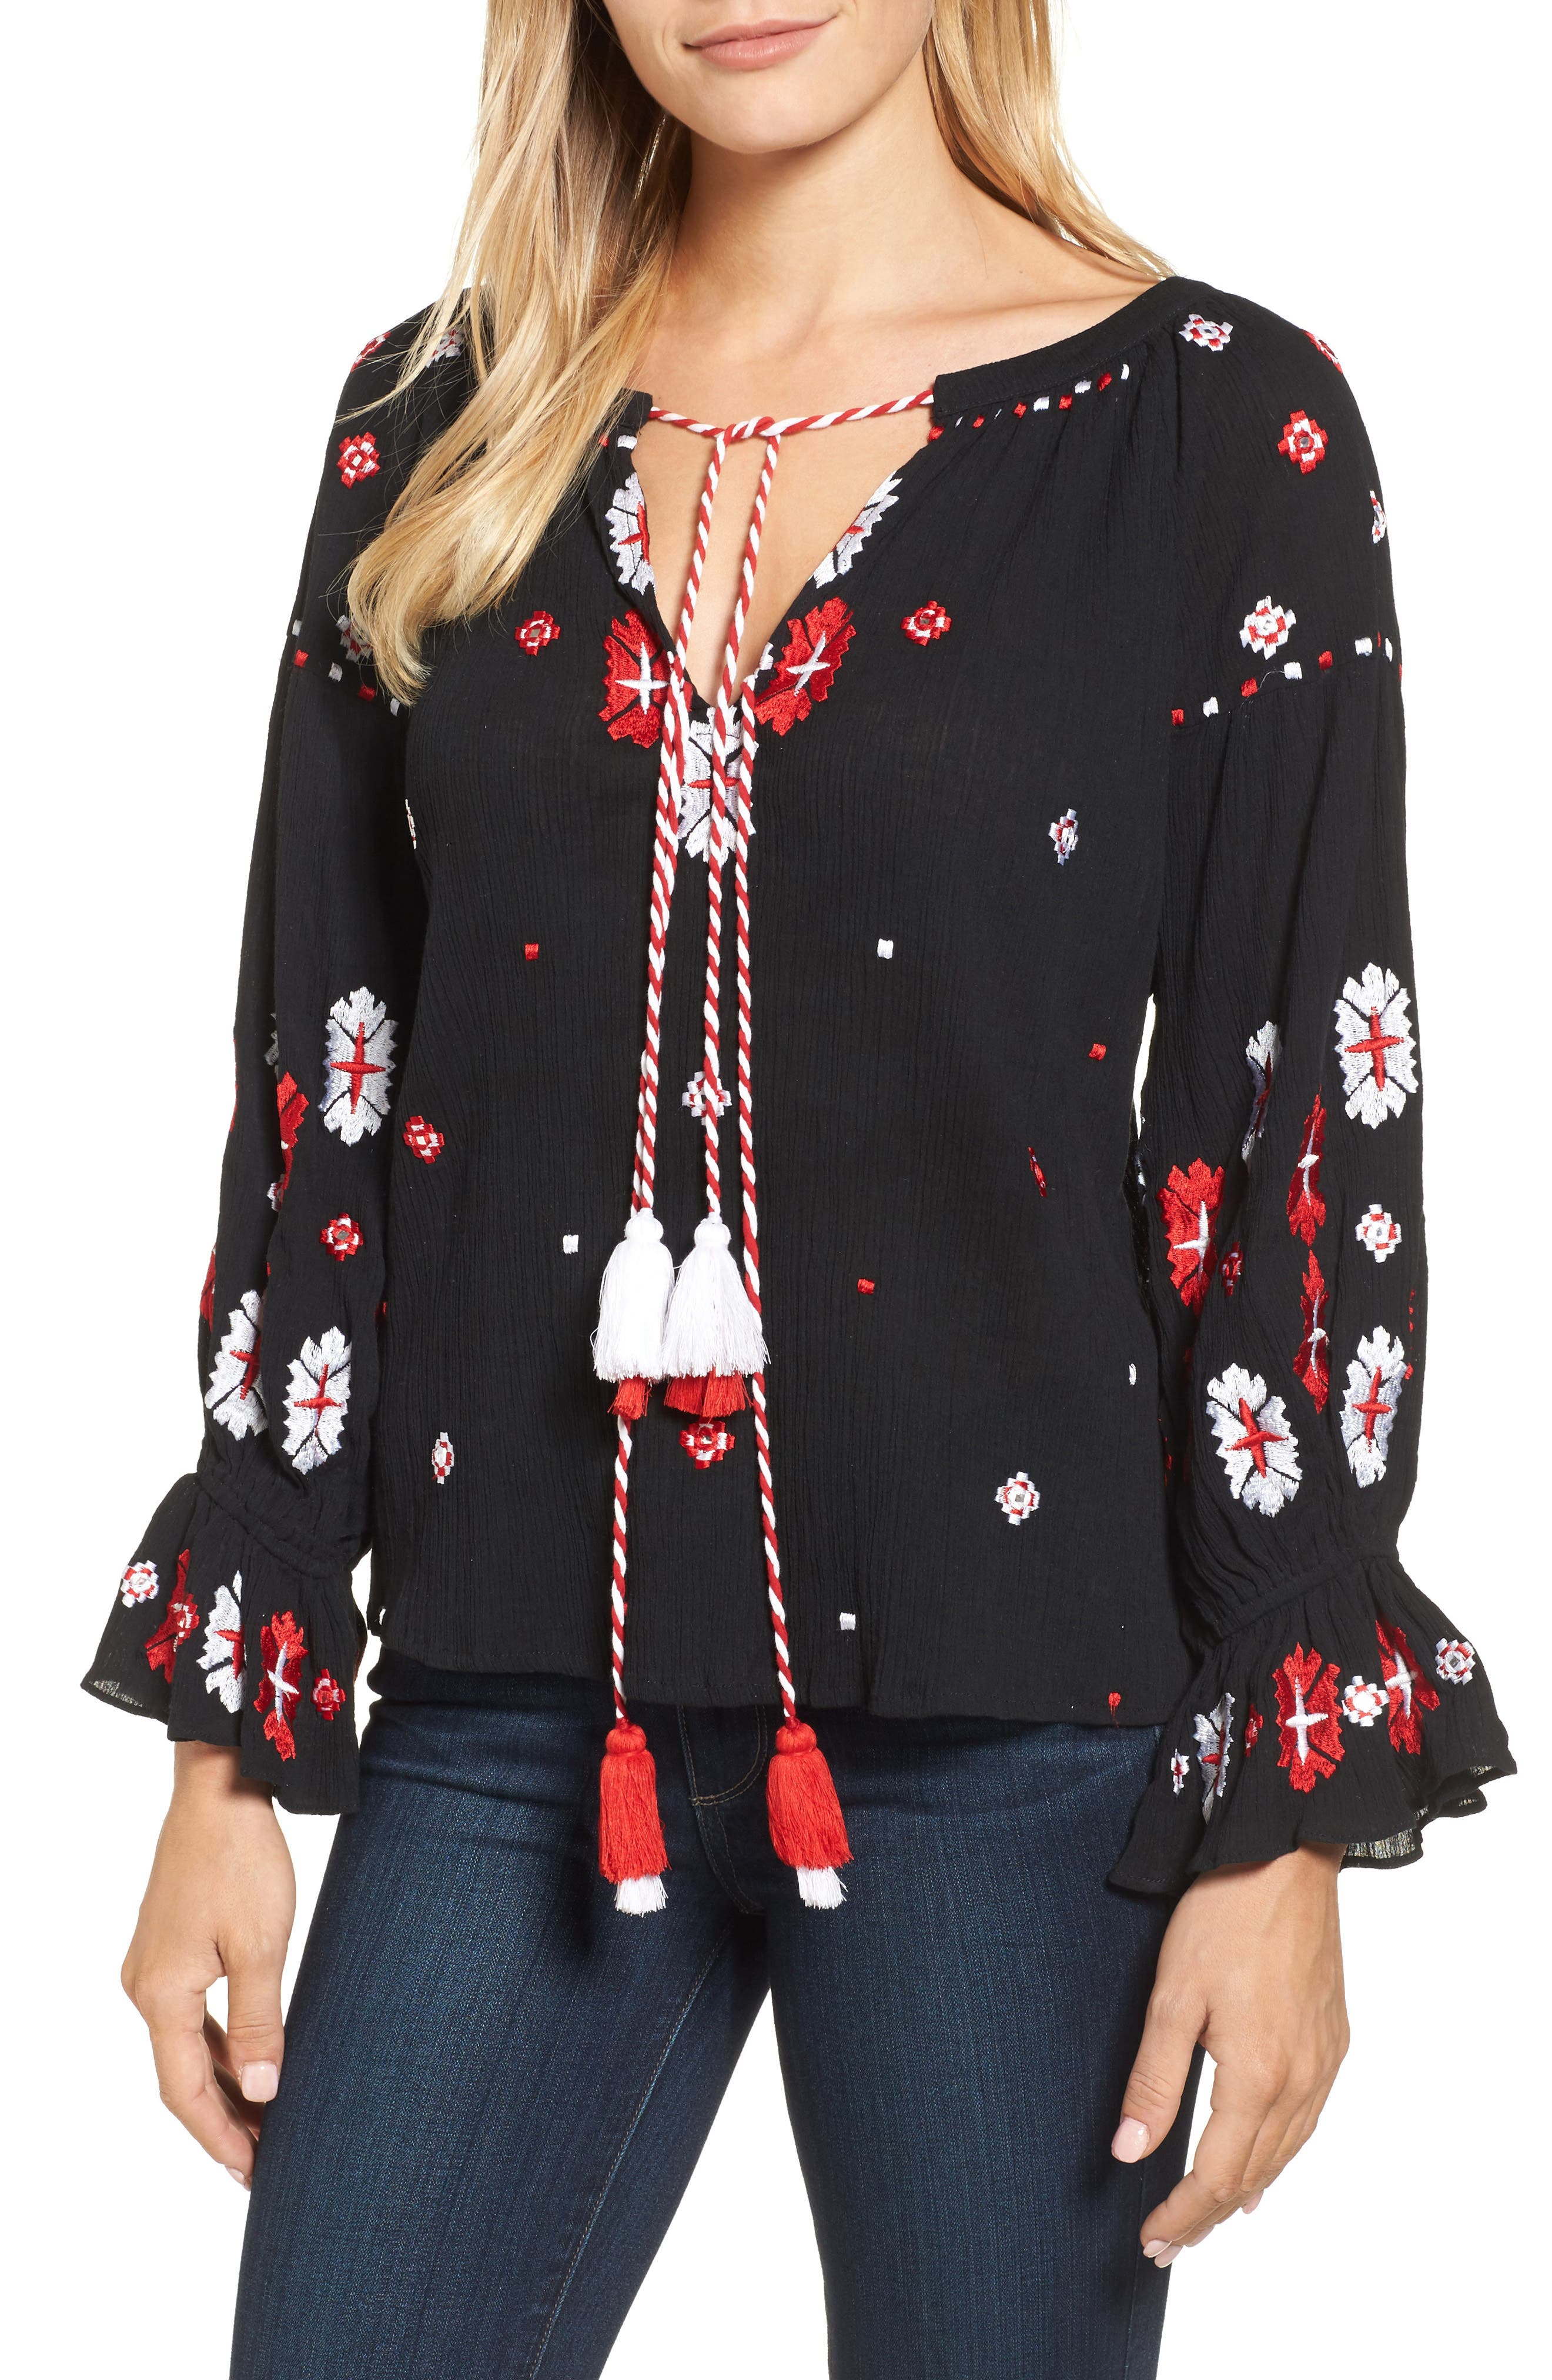 Myra Hand Embroidered Blouse,                         Main,                         color, 001